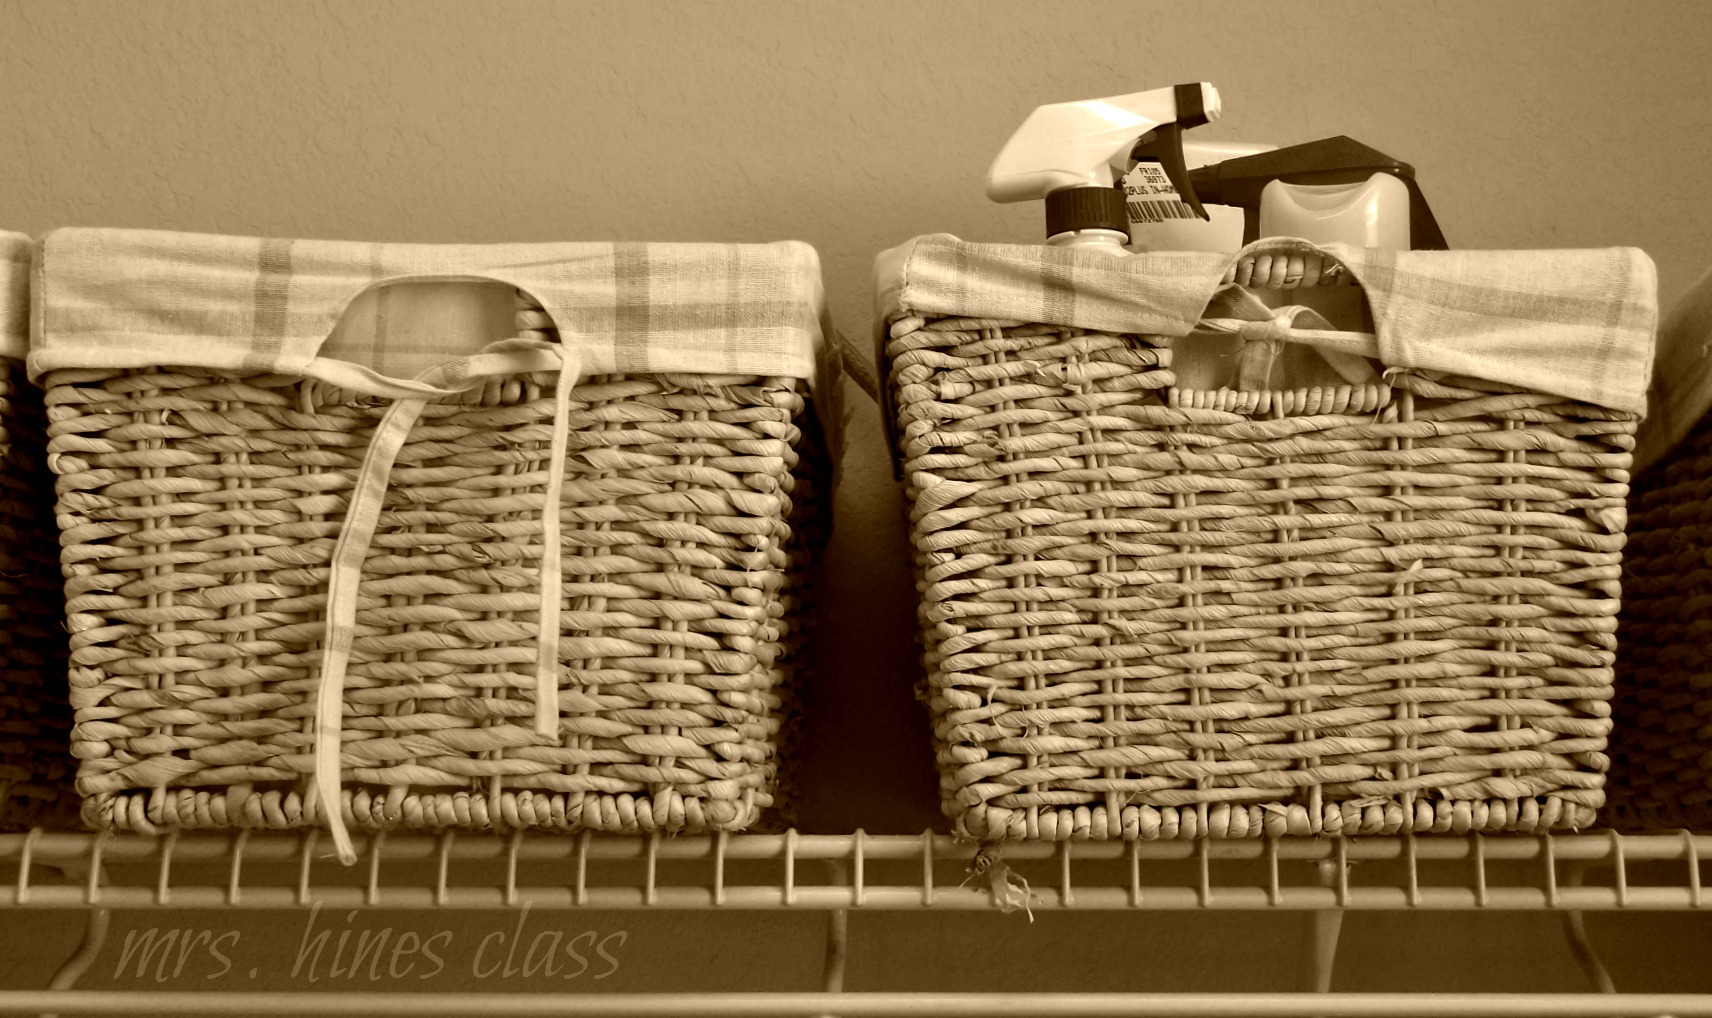 Find 8 Ways to Organize with Baskets at Mrs. Hines' Class